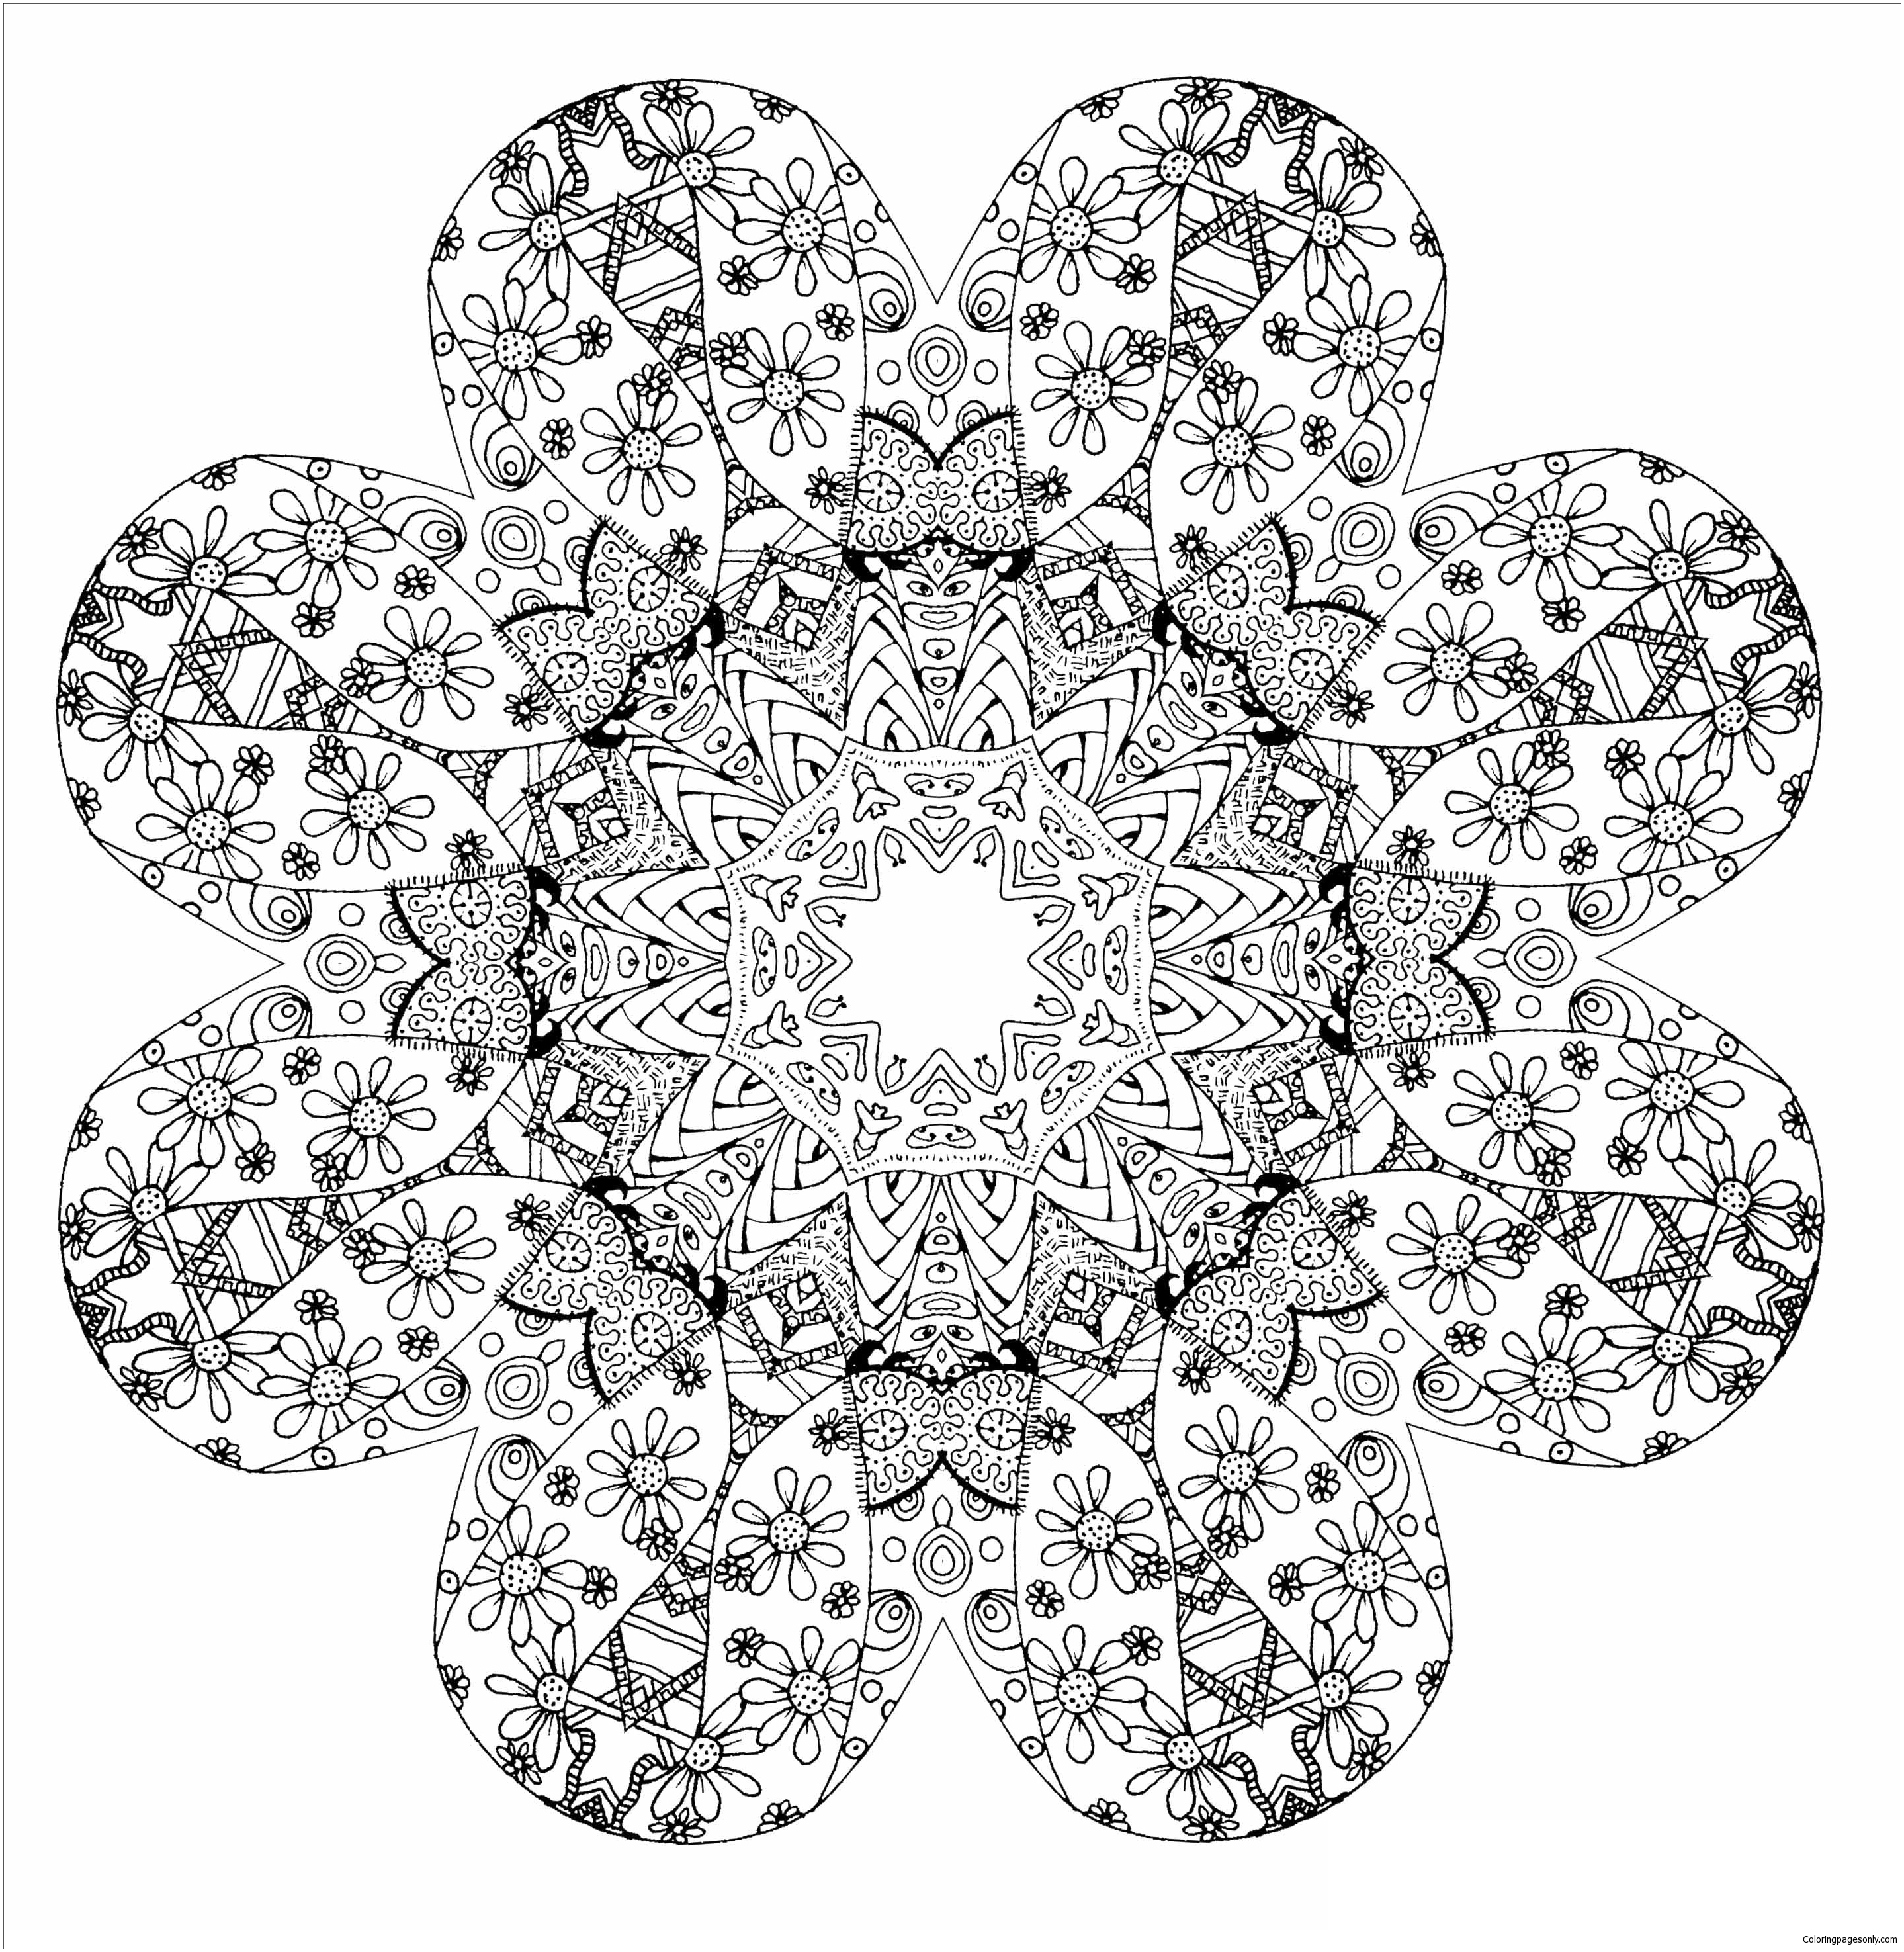 - Mandala Stress Relief Coloring Page - Free Coloring Pages Online